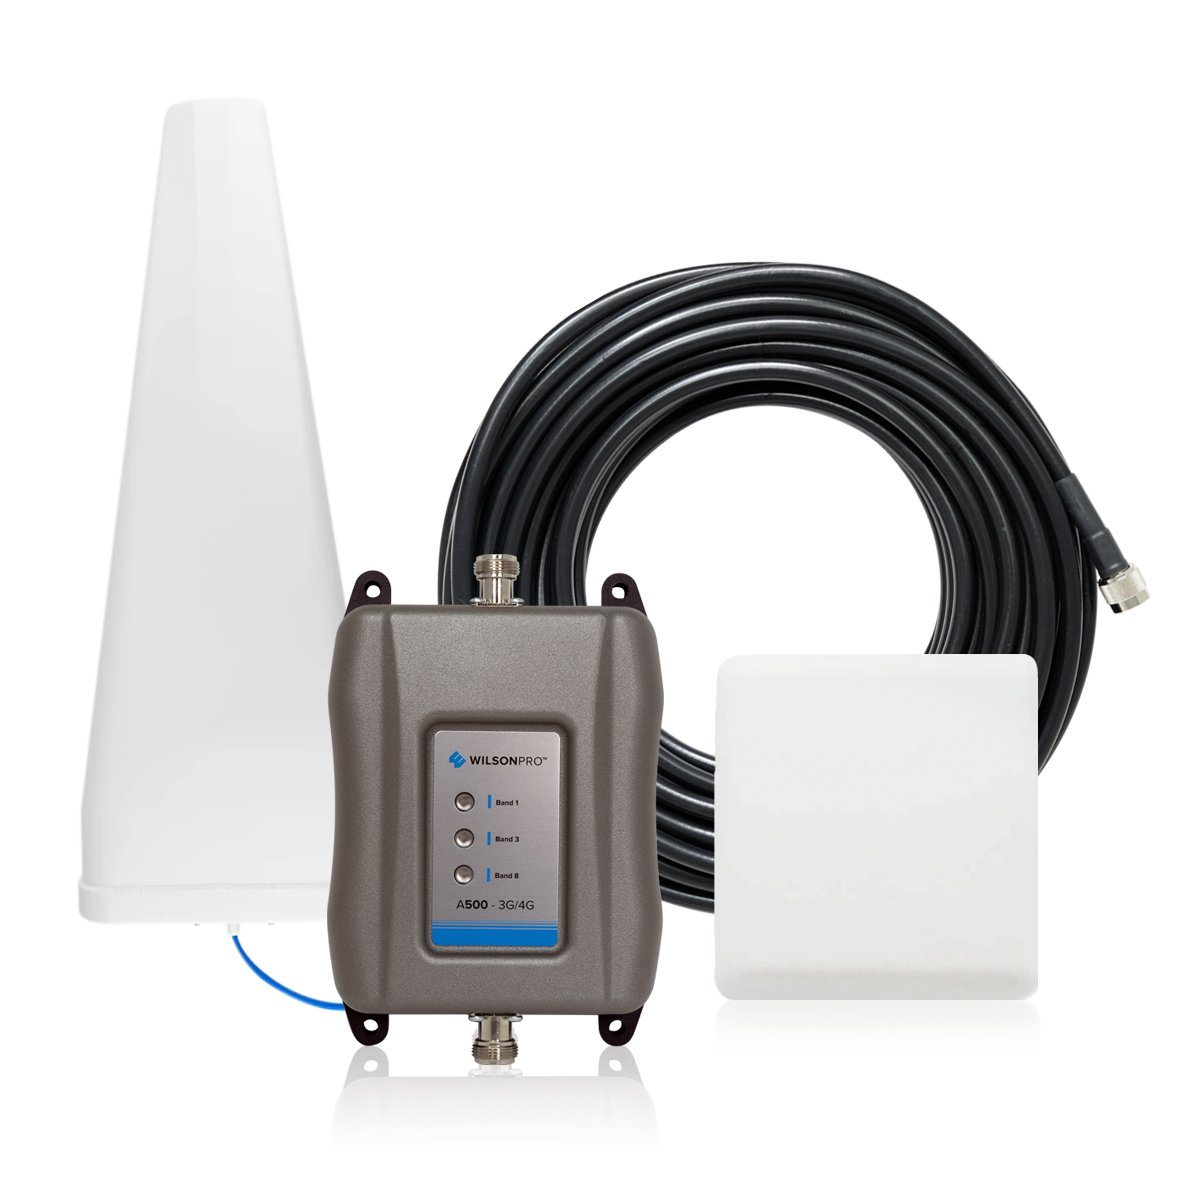 WilsonPro A500 Signal Booster Kit